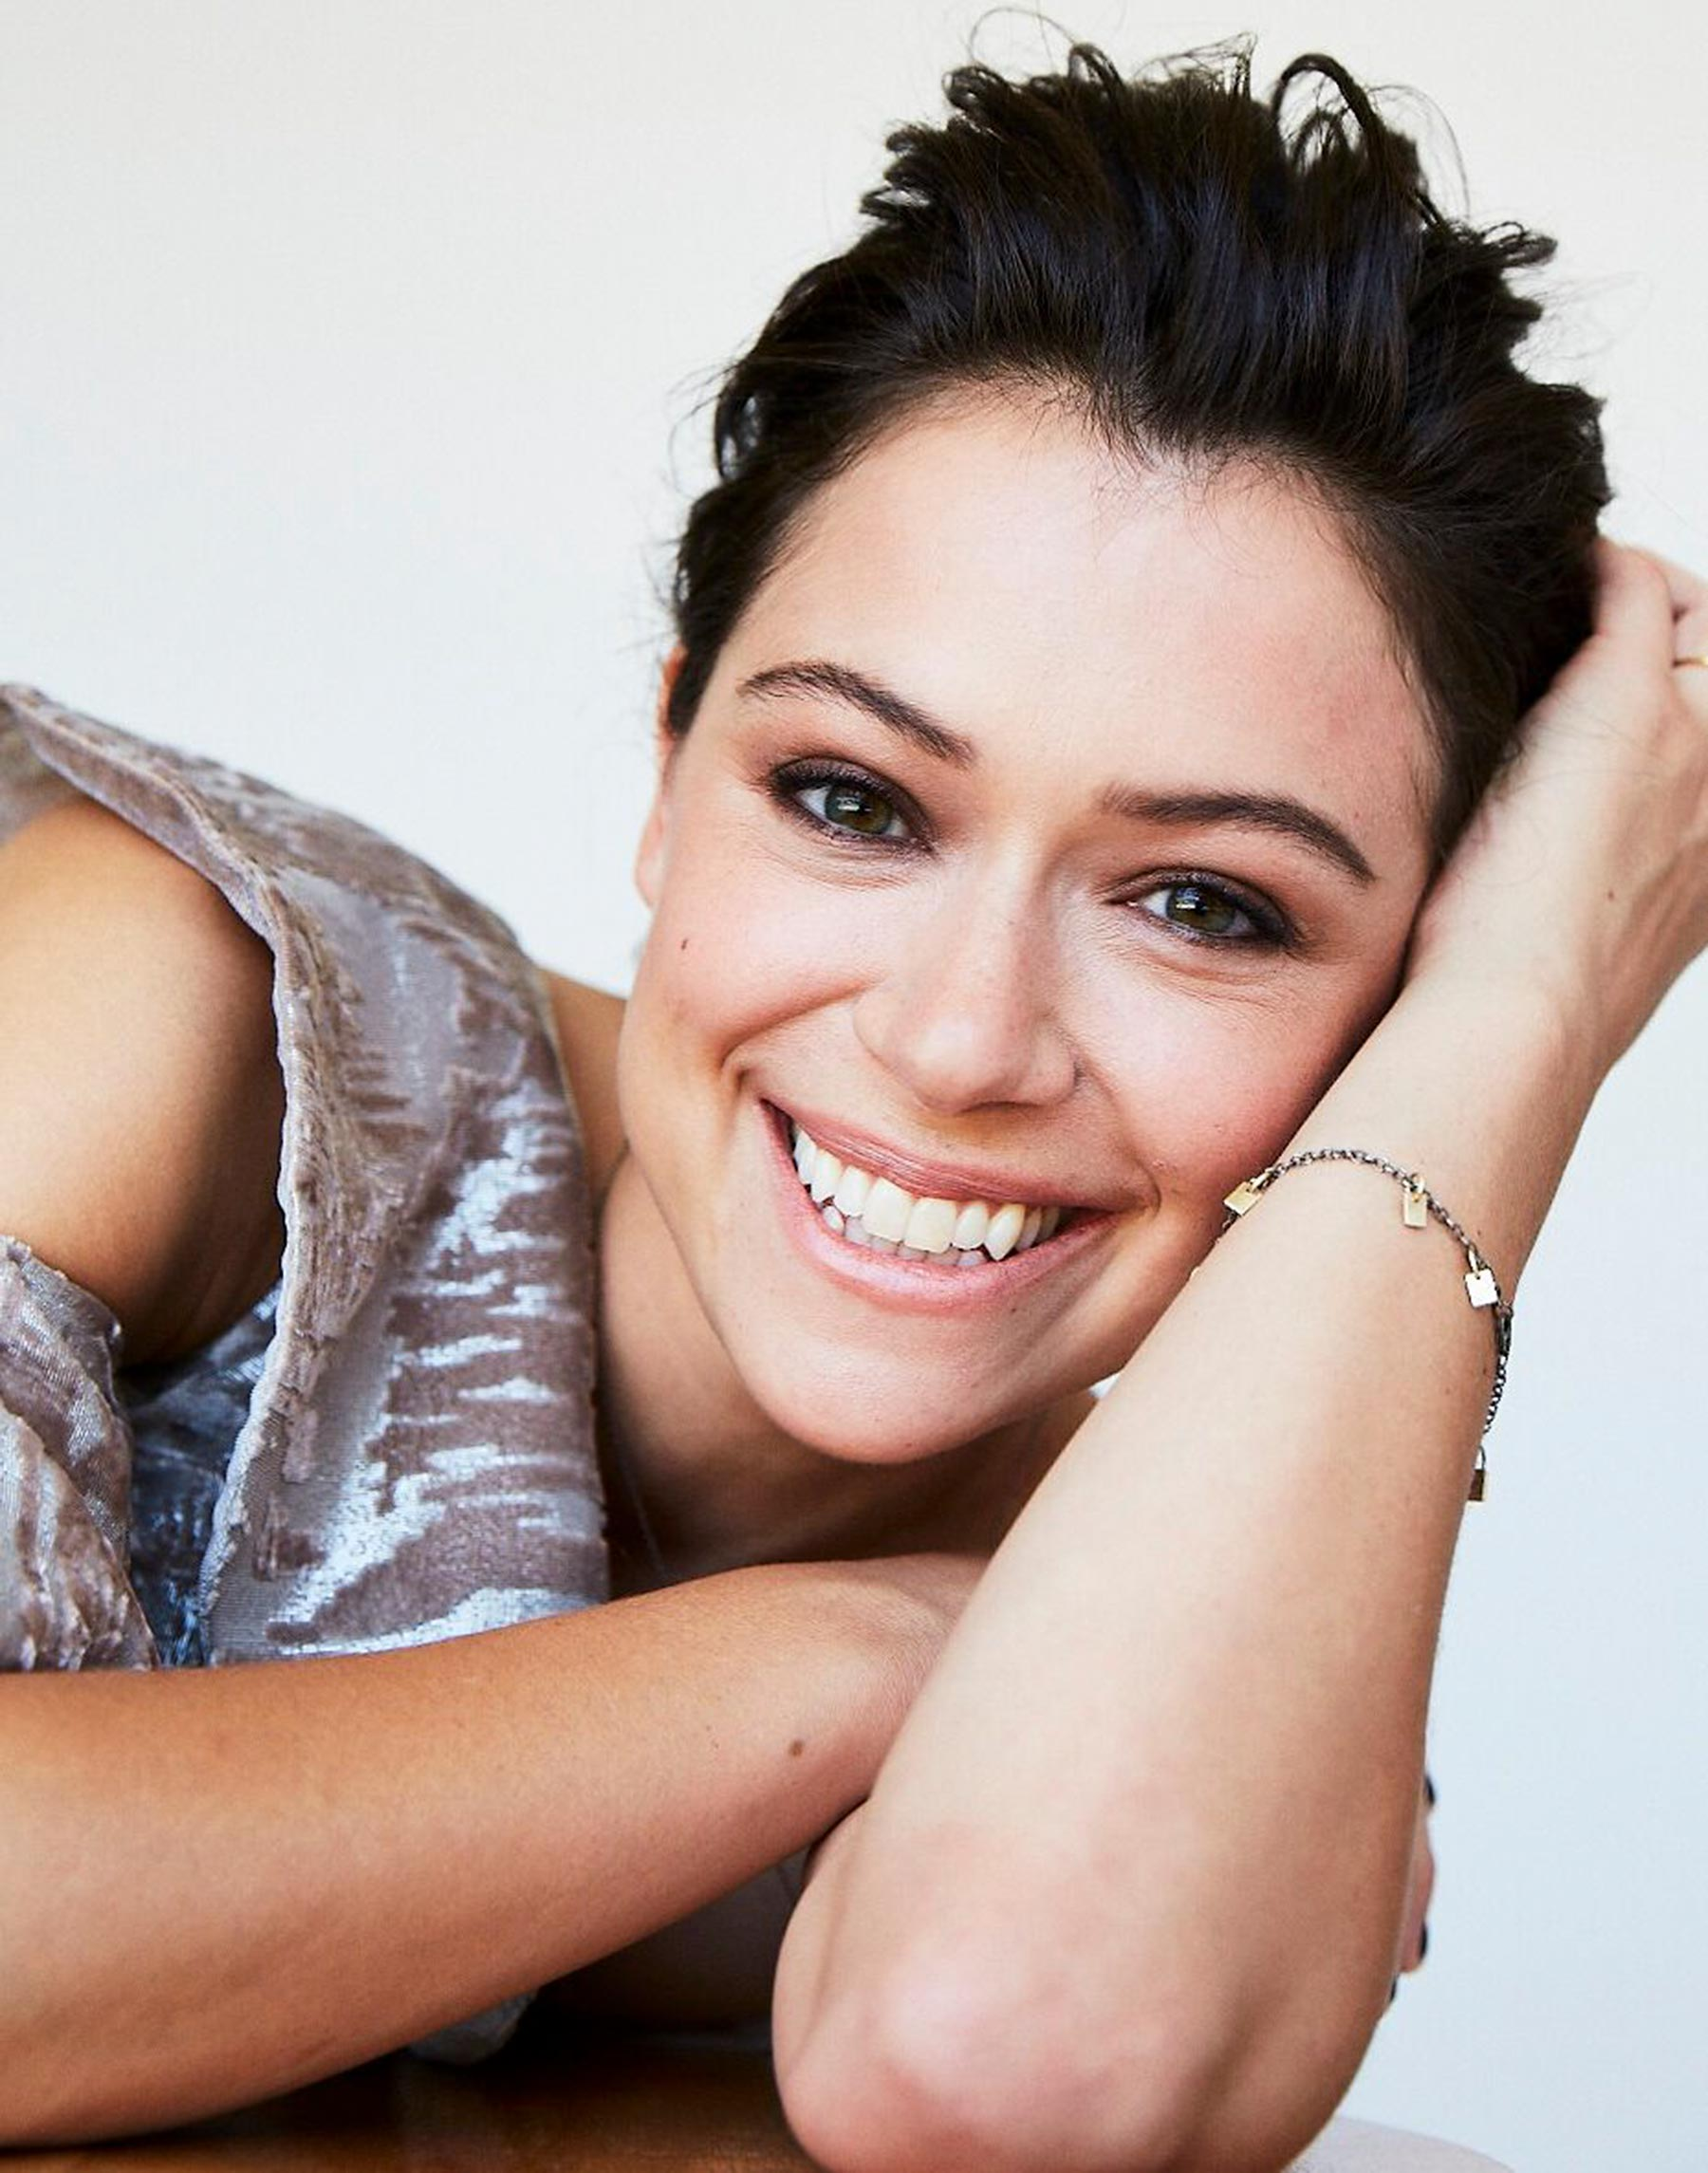 Listen to Tatiana Maslany introduce a new clone in Orphan Black: The Next Chapter clip